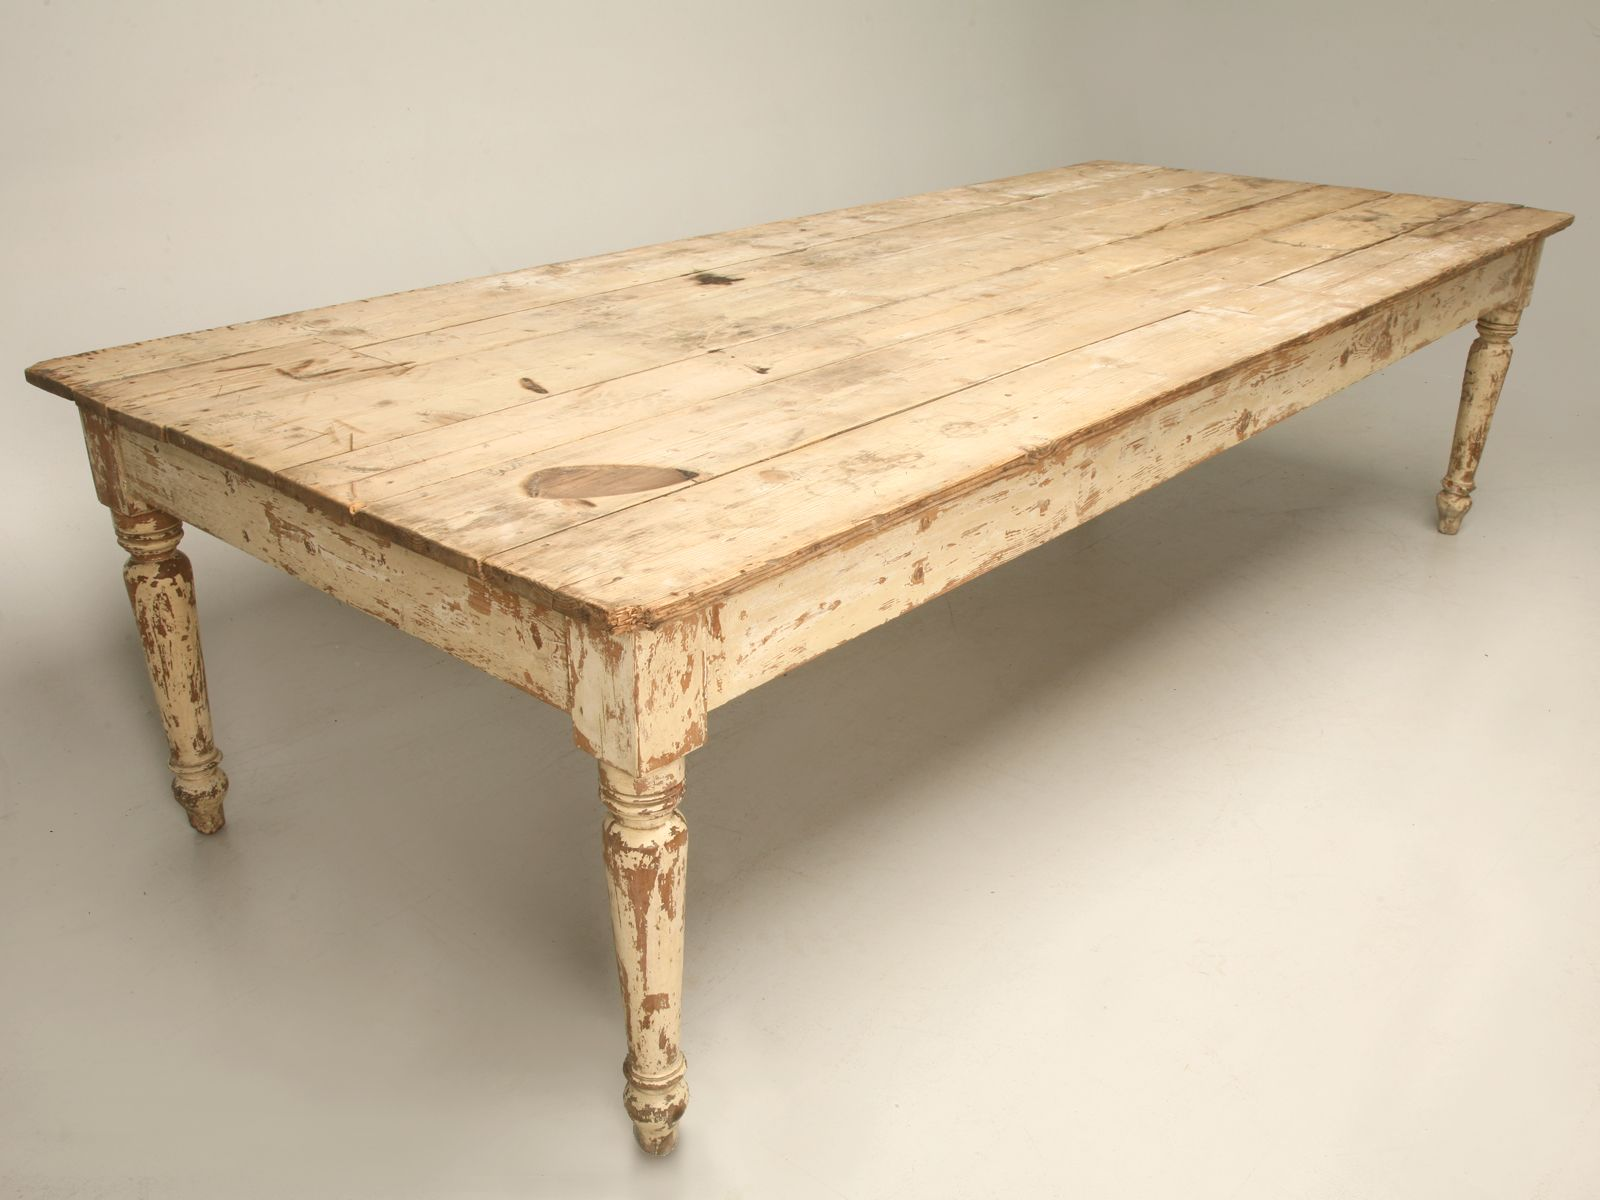 Italian Antique Farm Table wow that is one expensive